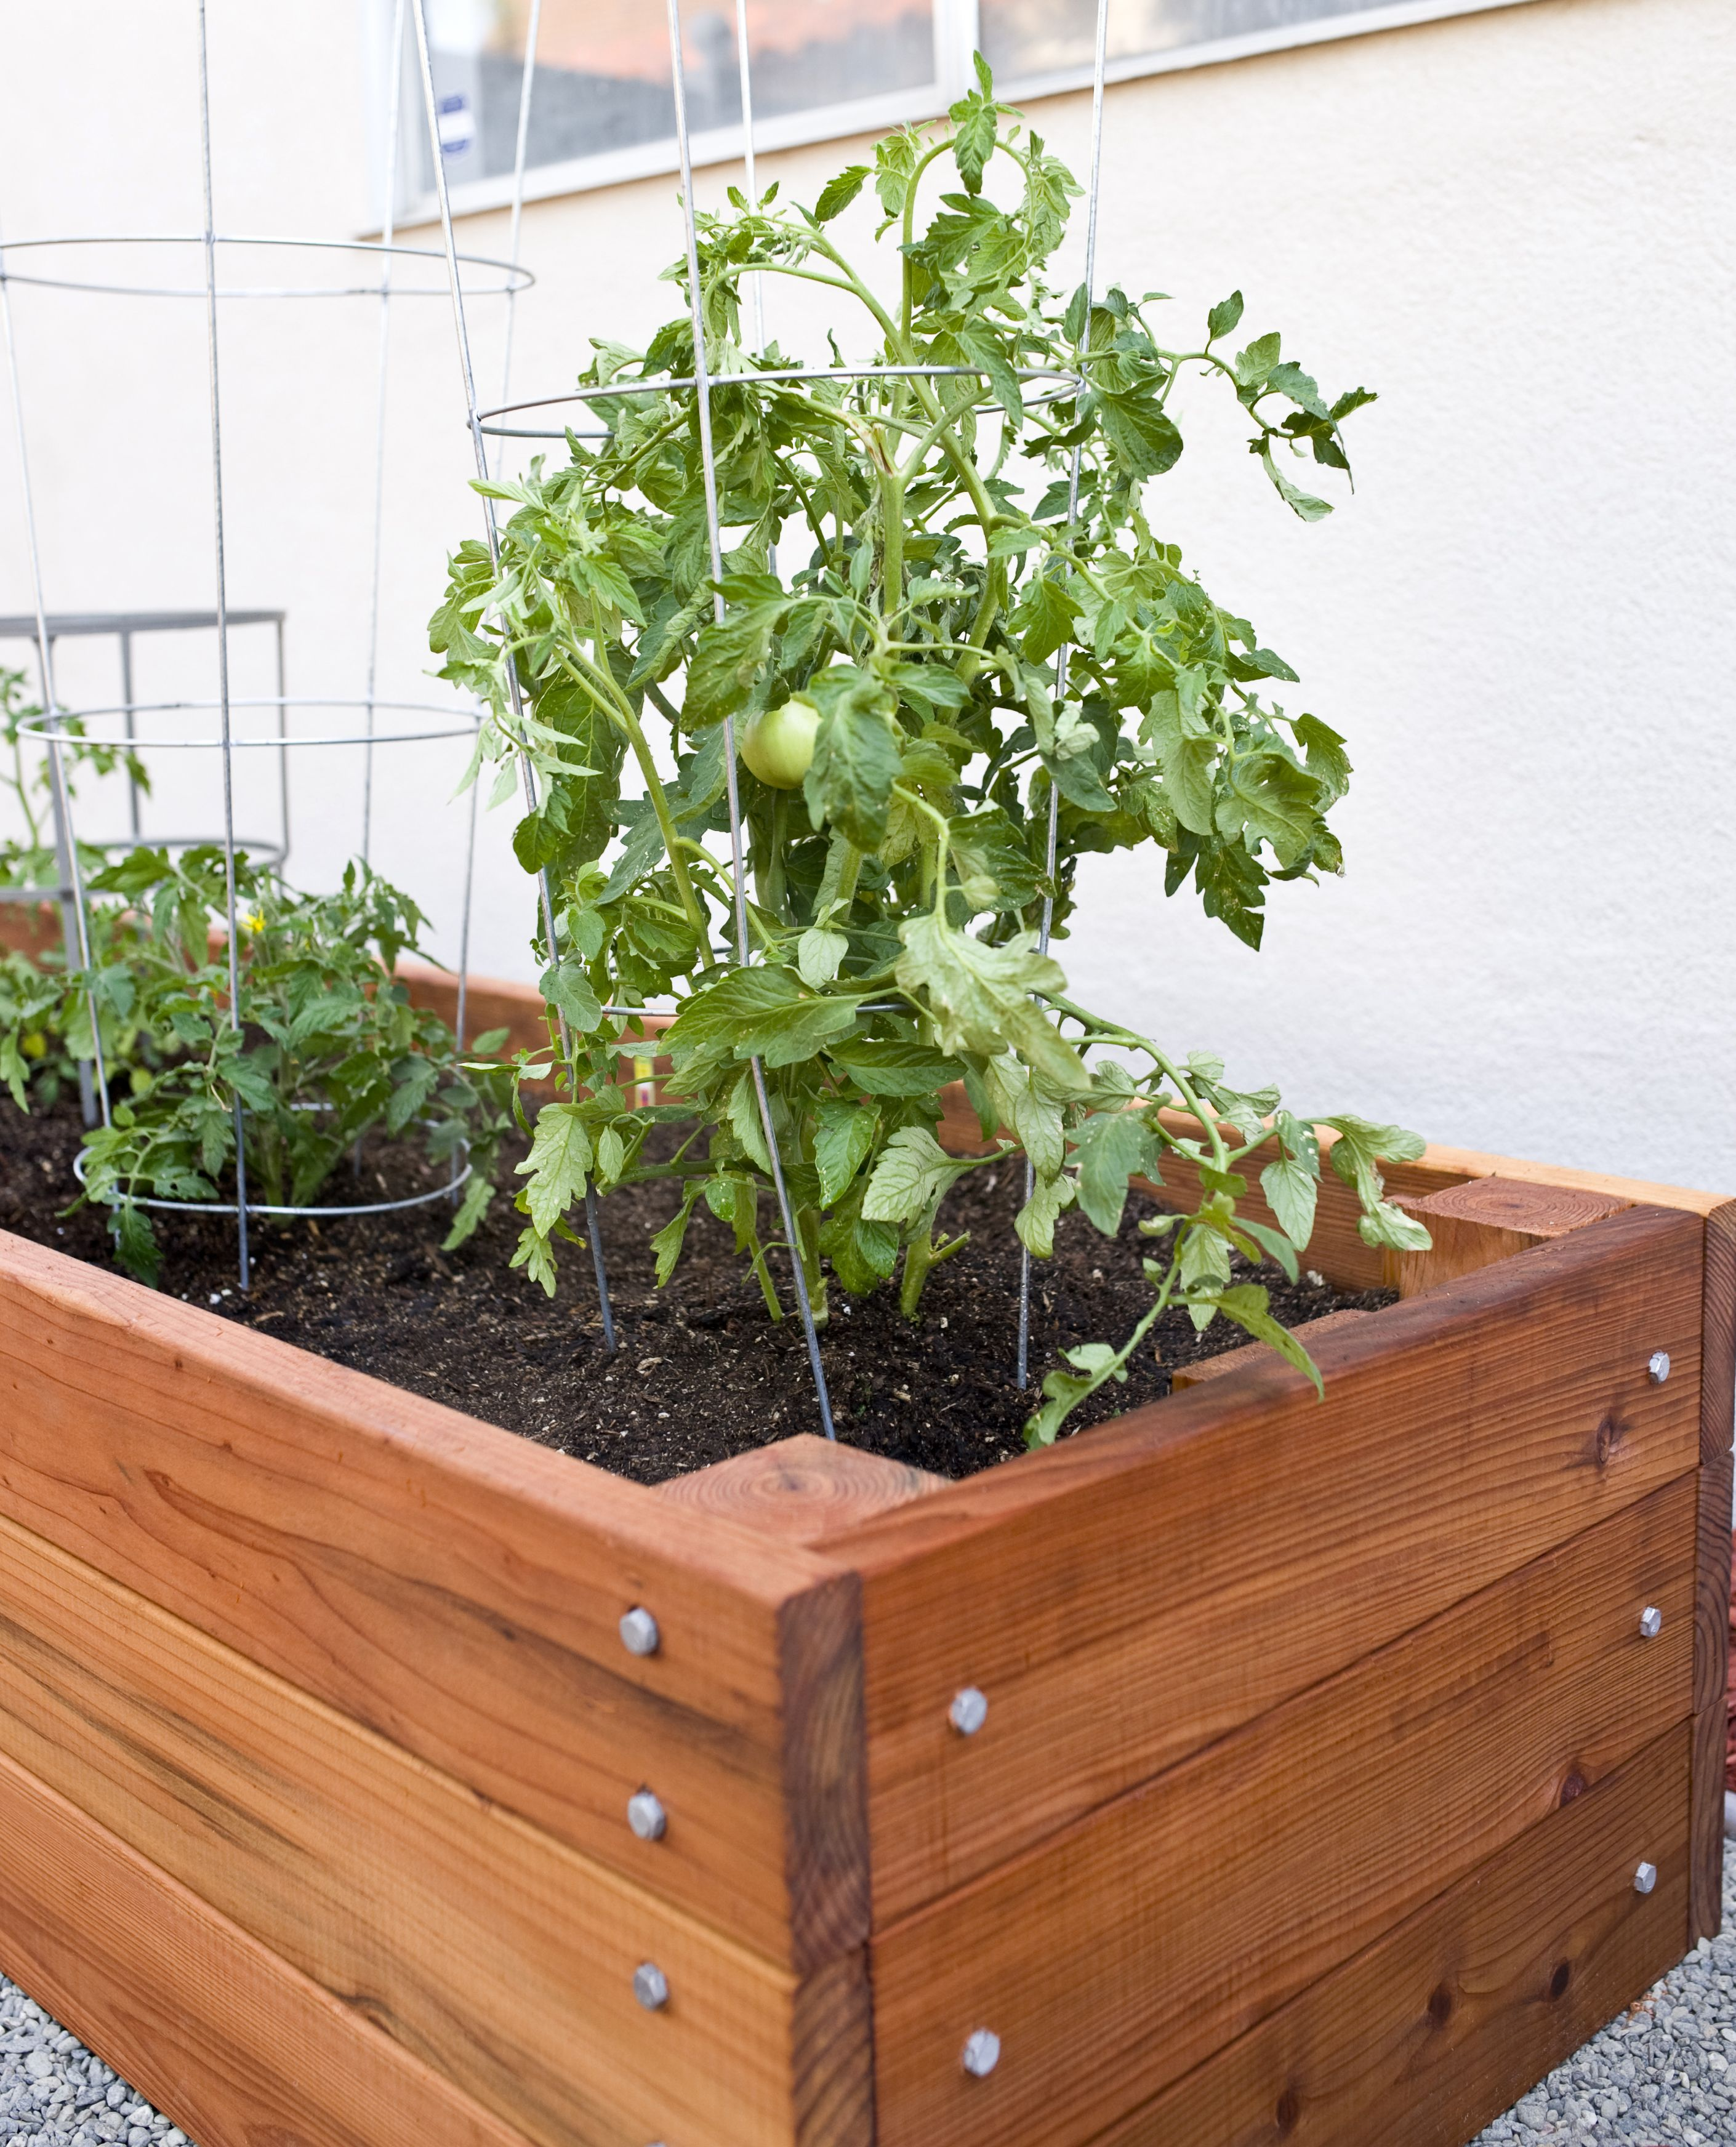 Large Redwood Planter Box For Tomatoes Redwood Planter